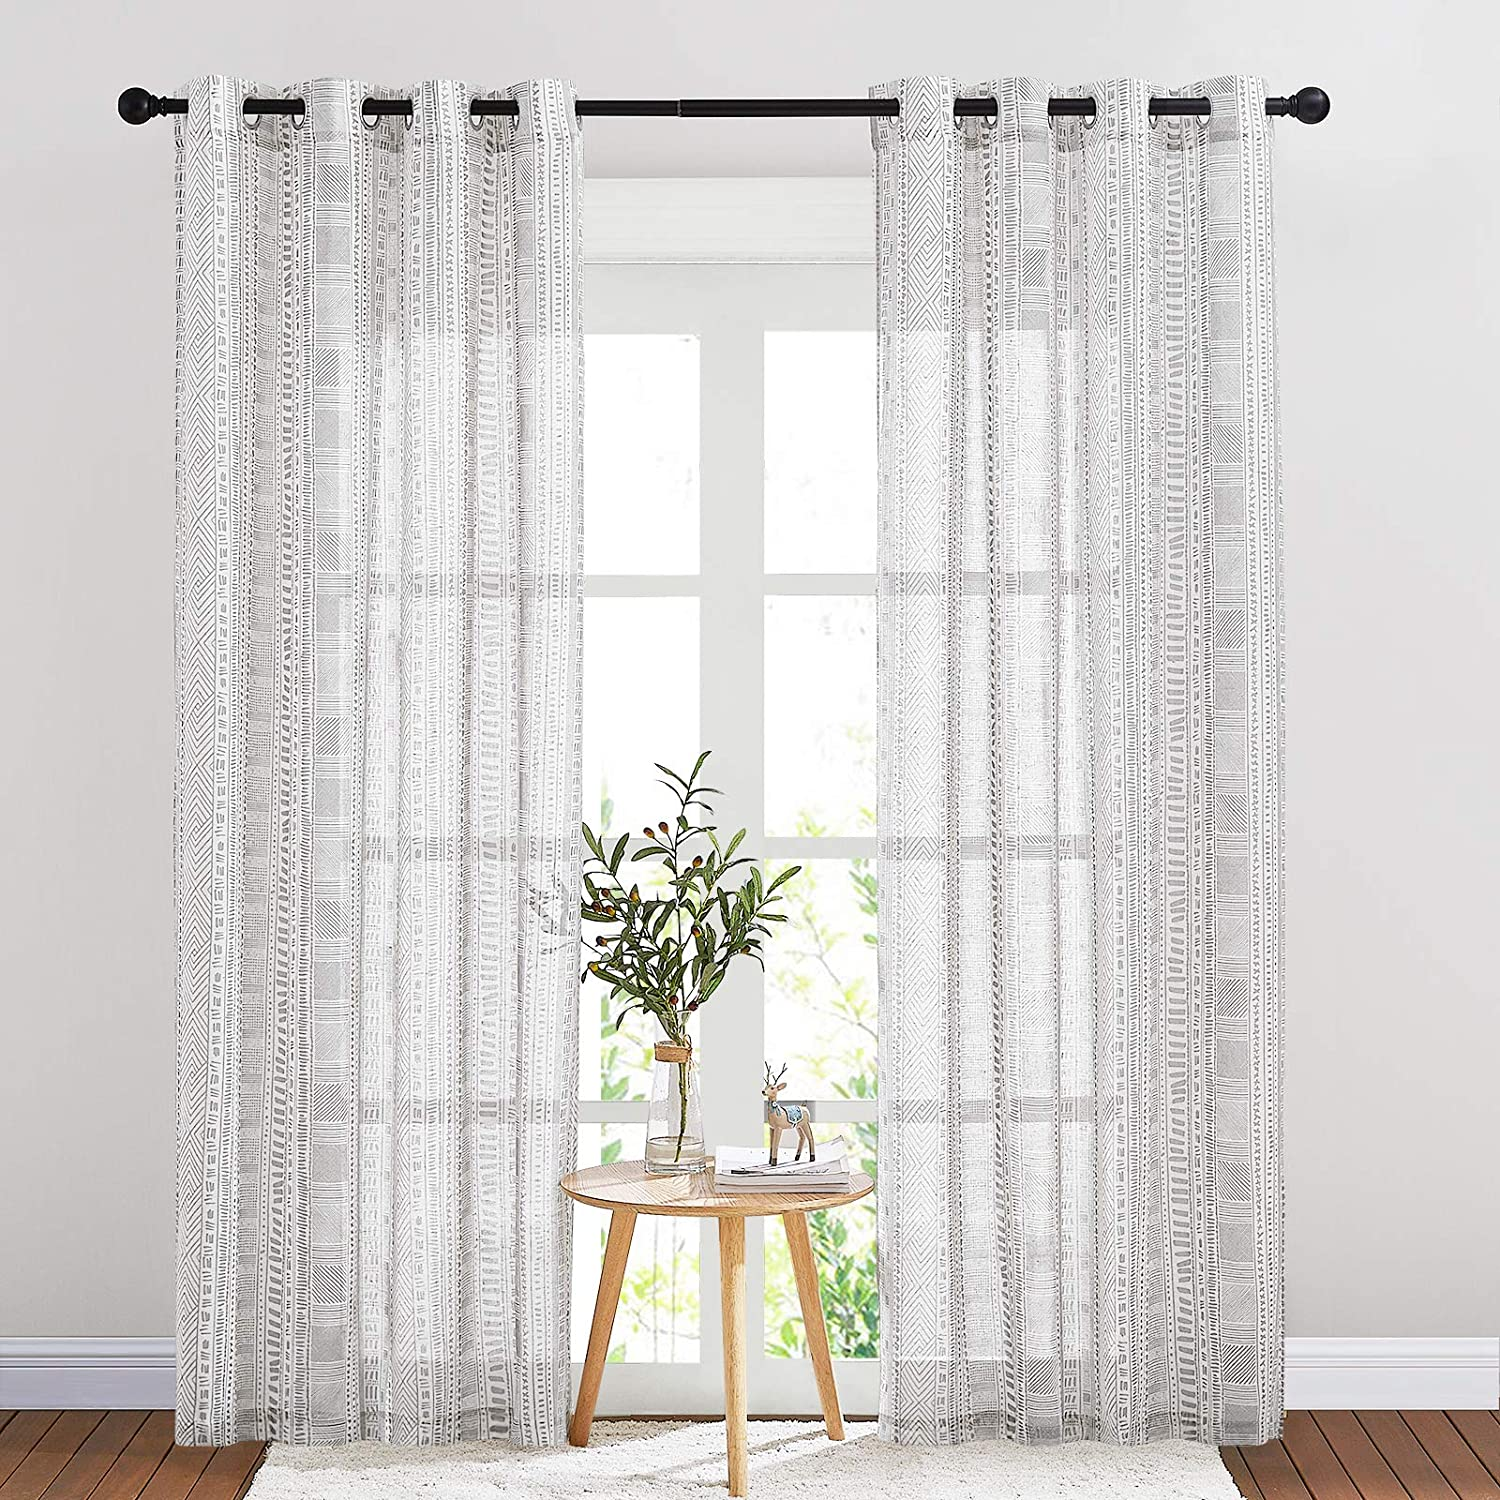 """NICETOWN Flax Semi Sheer Vintage Curtains 84 inches Long, Grommet Bohemian Style Bedroom Window Treatment Natural Linen Weave Privacy with Light Through for Living Room, 50"""" W, 2 Panels, Grey"""